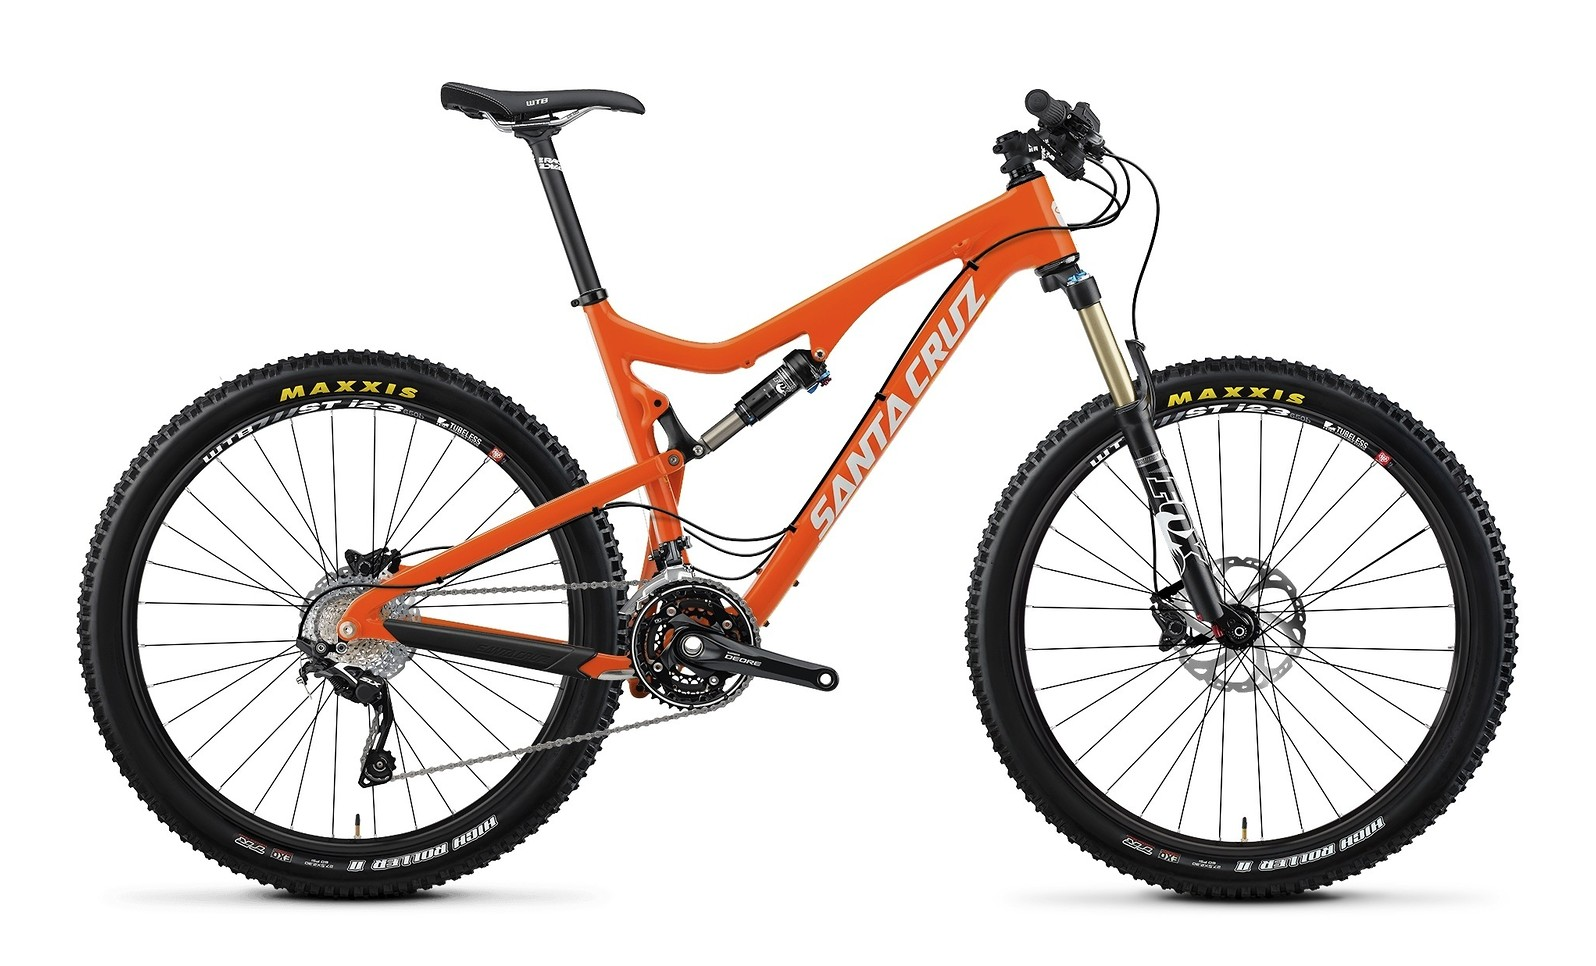 2014 Santa Cruz Solo Carbon R AM 27.5 Bike - orange